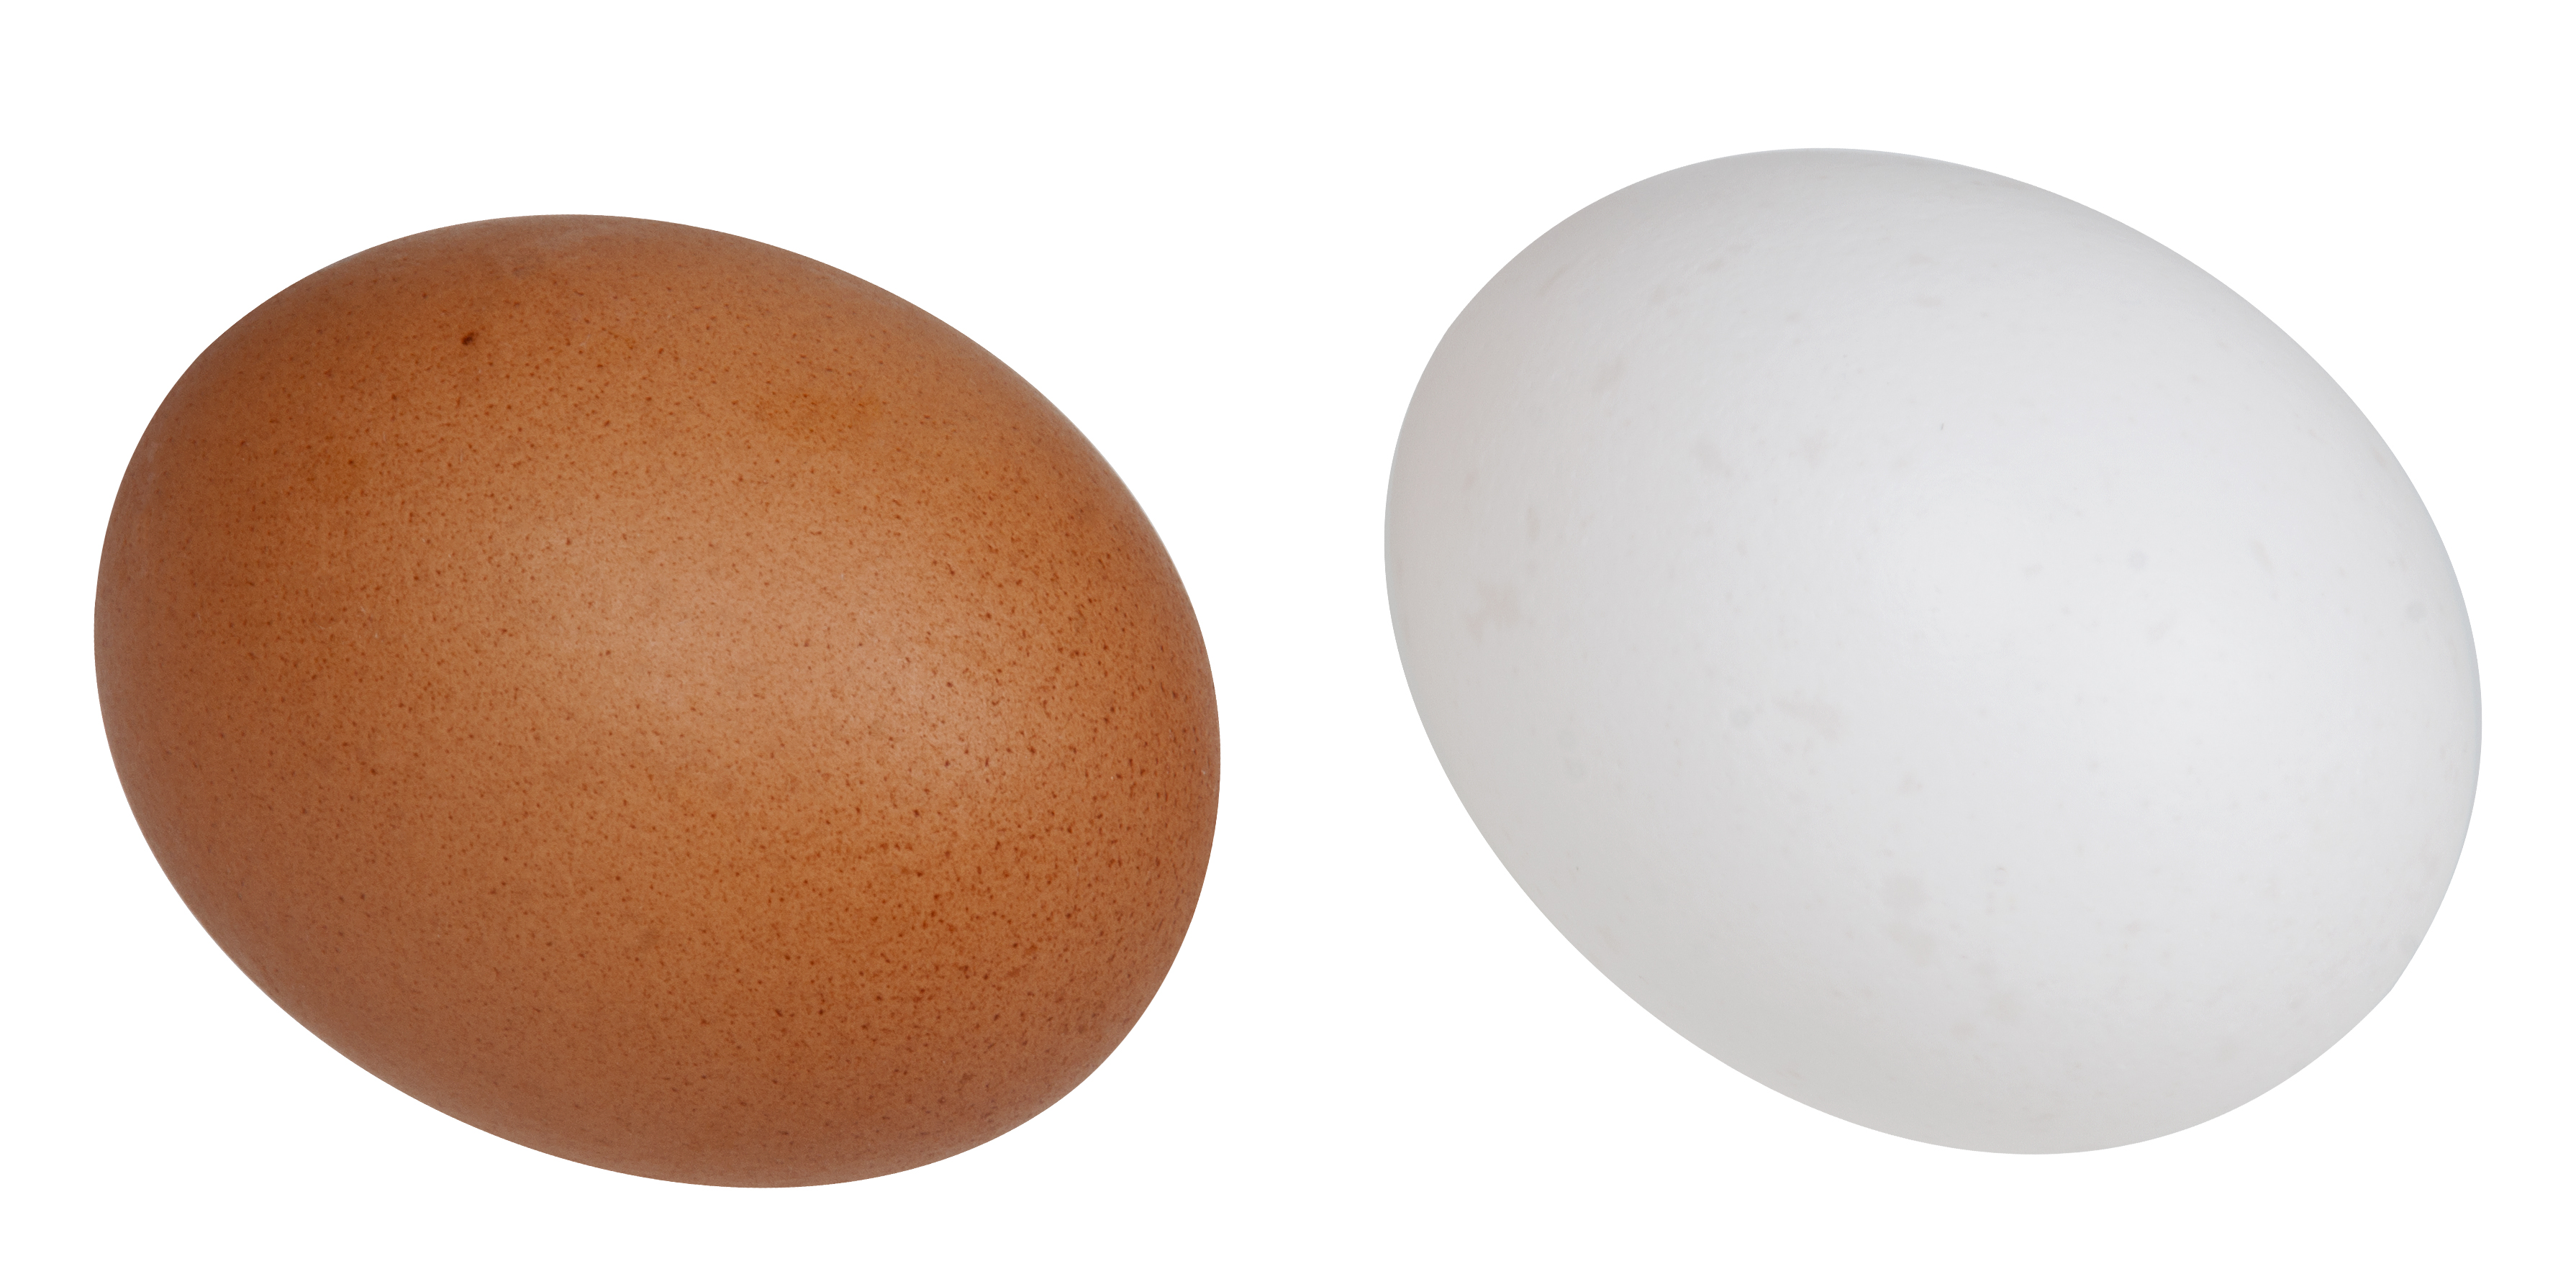 File:White-&-Brown-Eggs.jpg - Wikimedia Commons